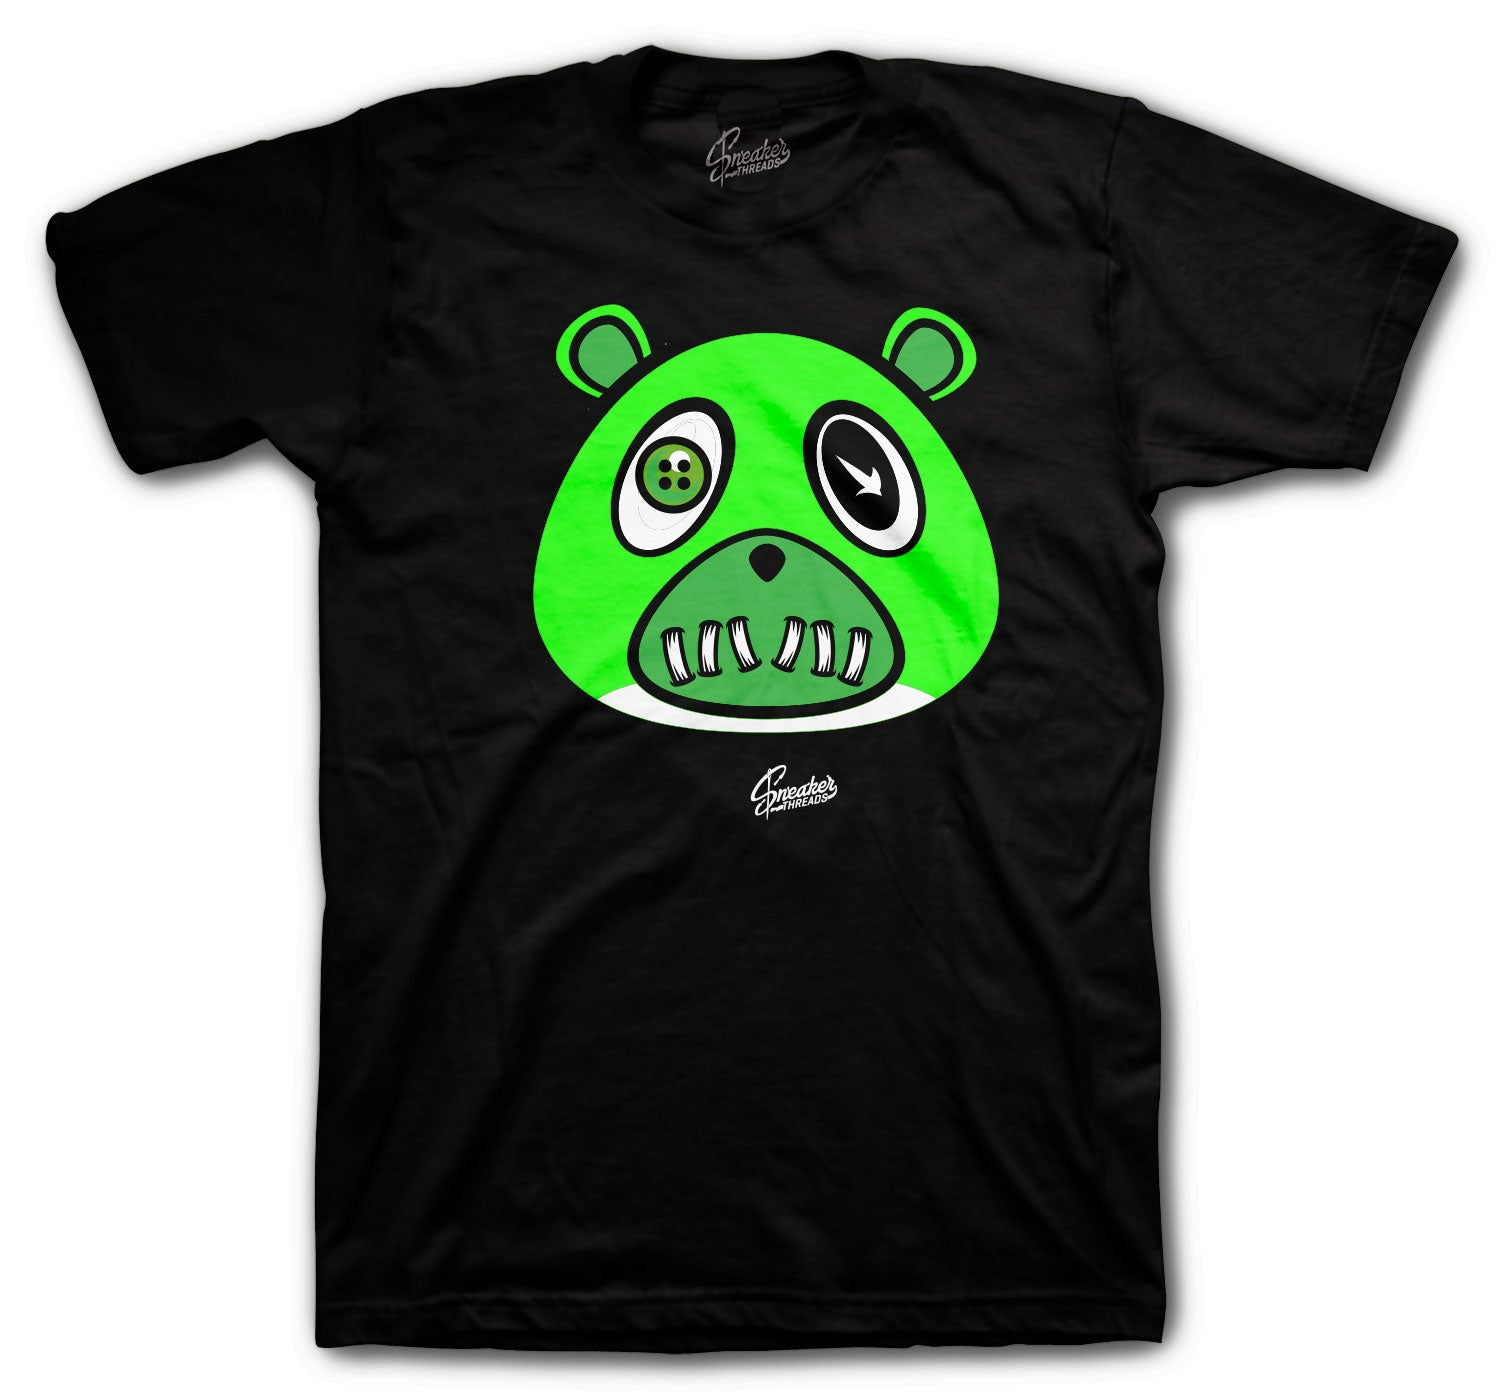 Jordan 1 Zen Green ST Bear Shirt